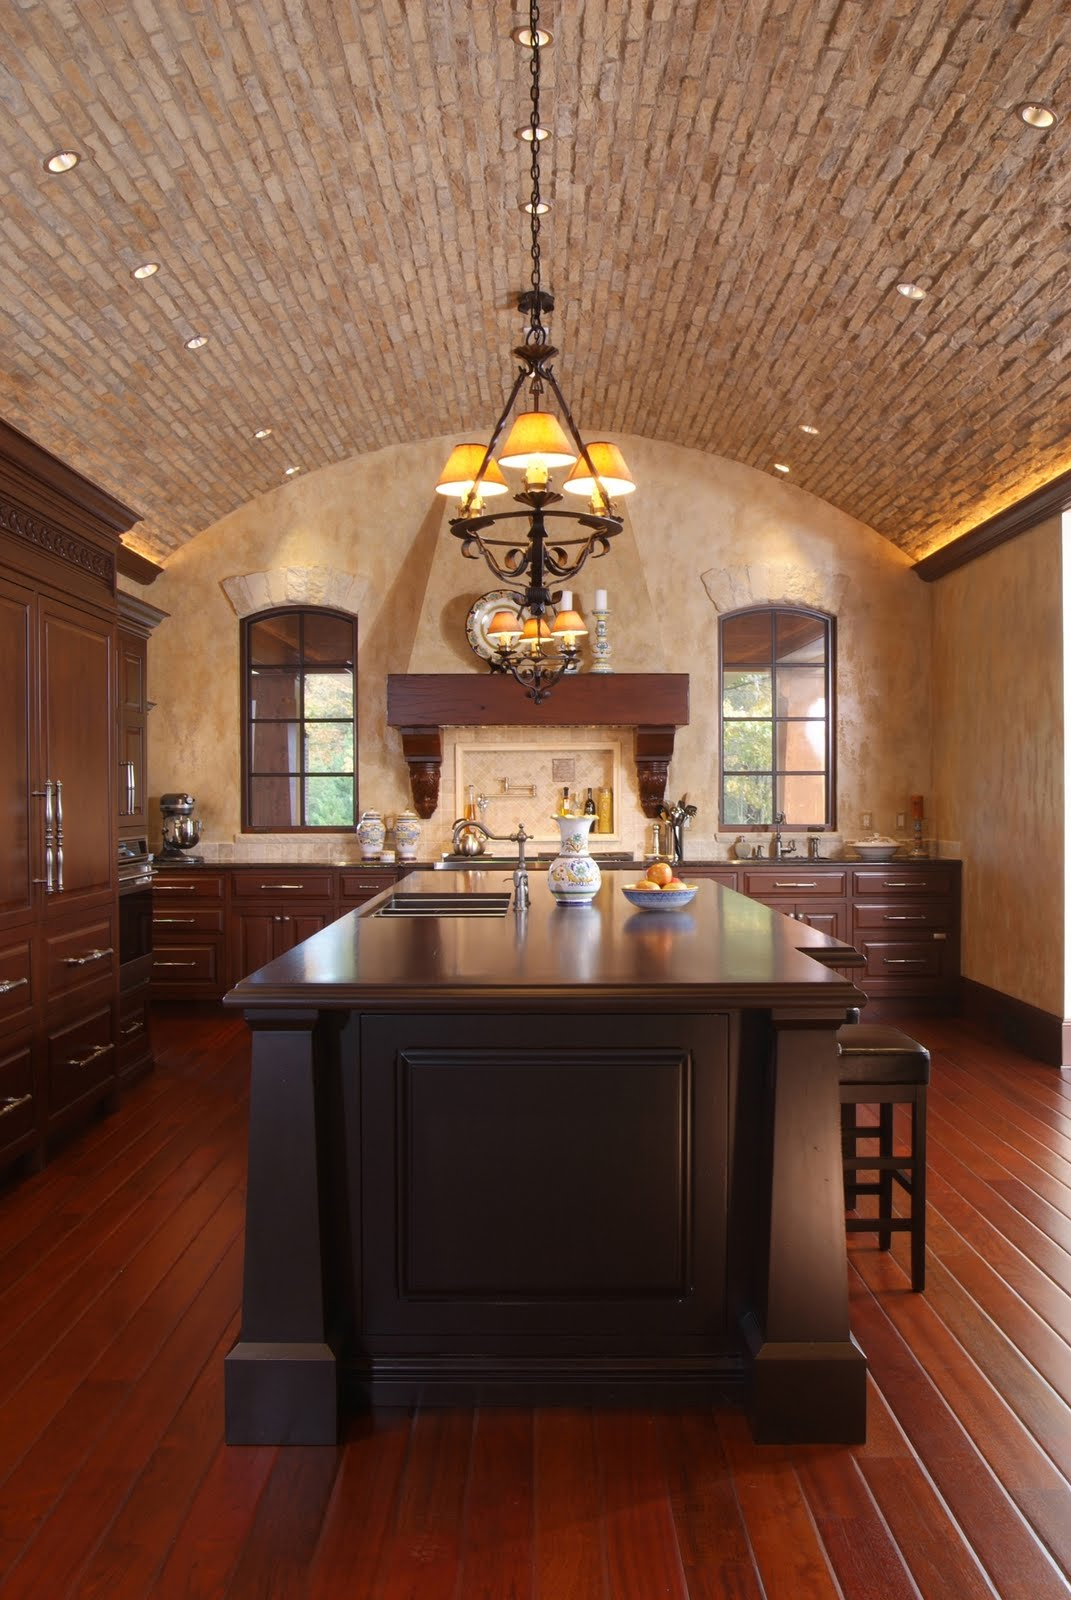 Architectural tutorial ceilings visbeen architects for Barrel vault roof